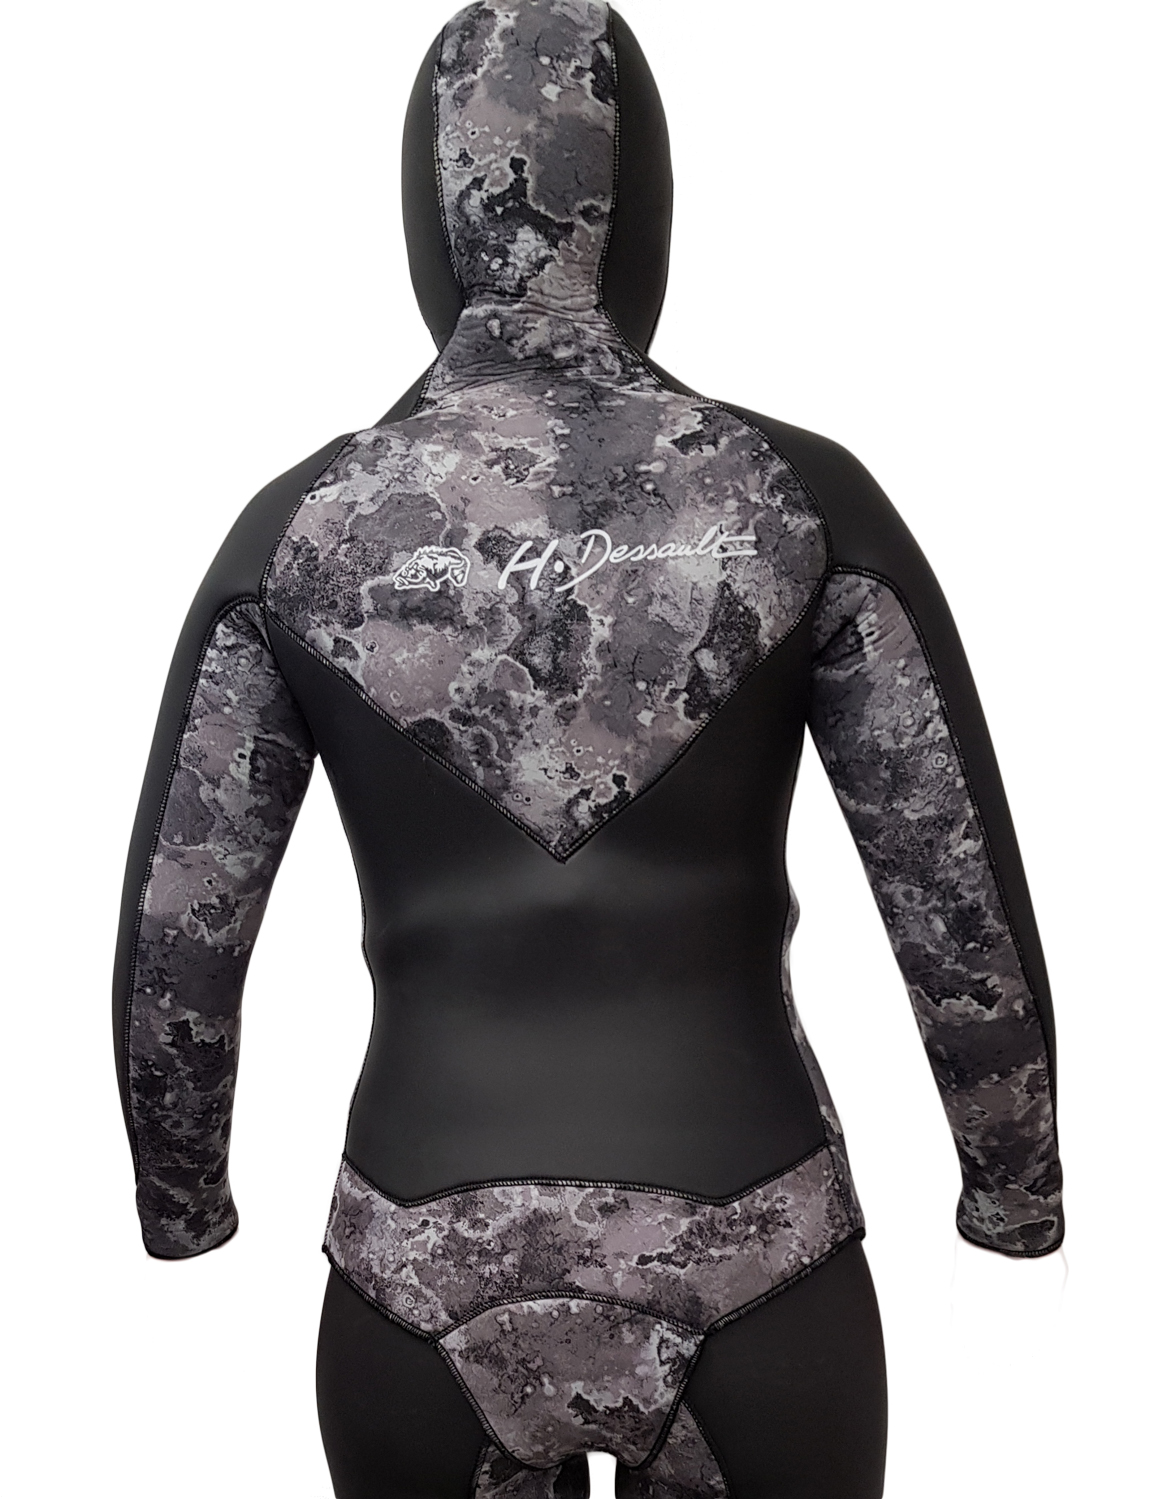 H Dessault UV DRAGT JACKET FEMALE DUO CAMO 7,5MM